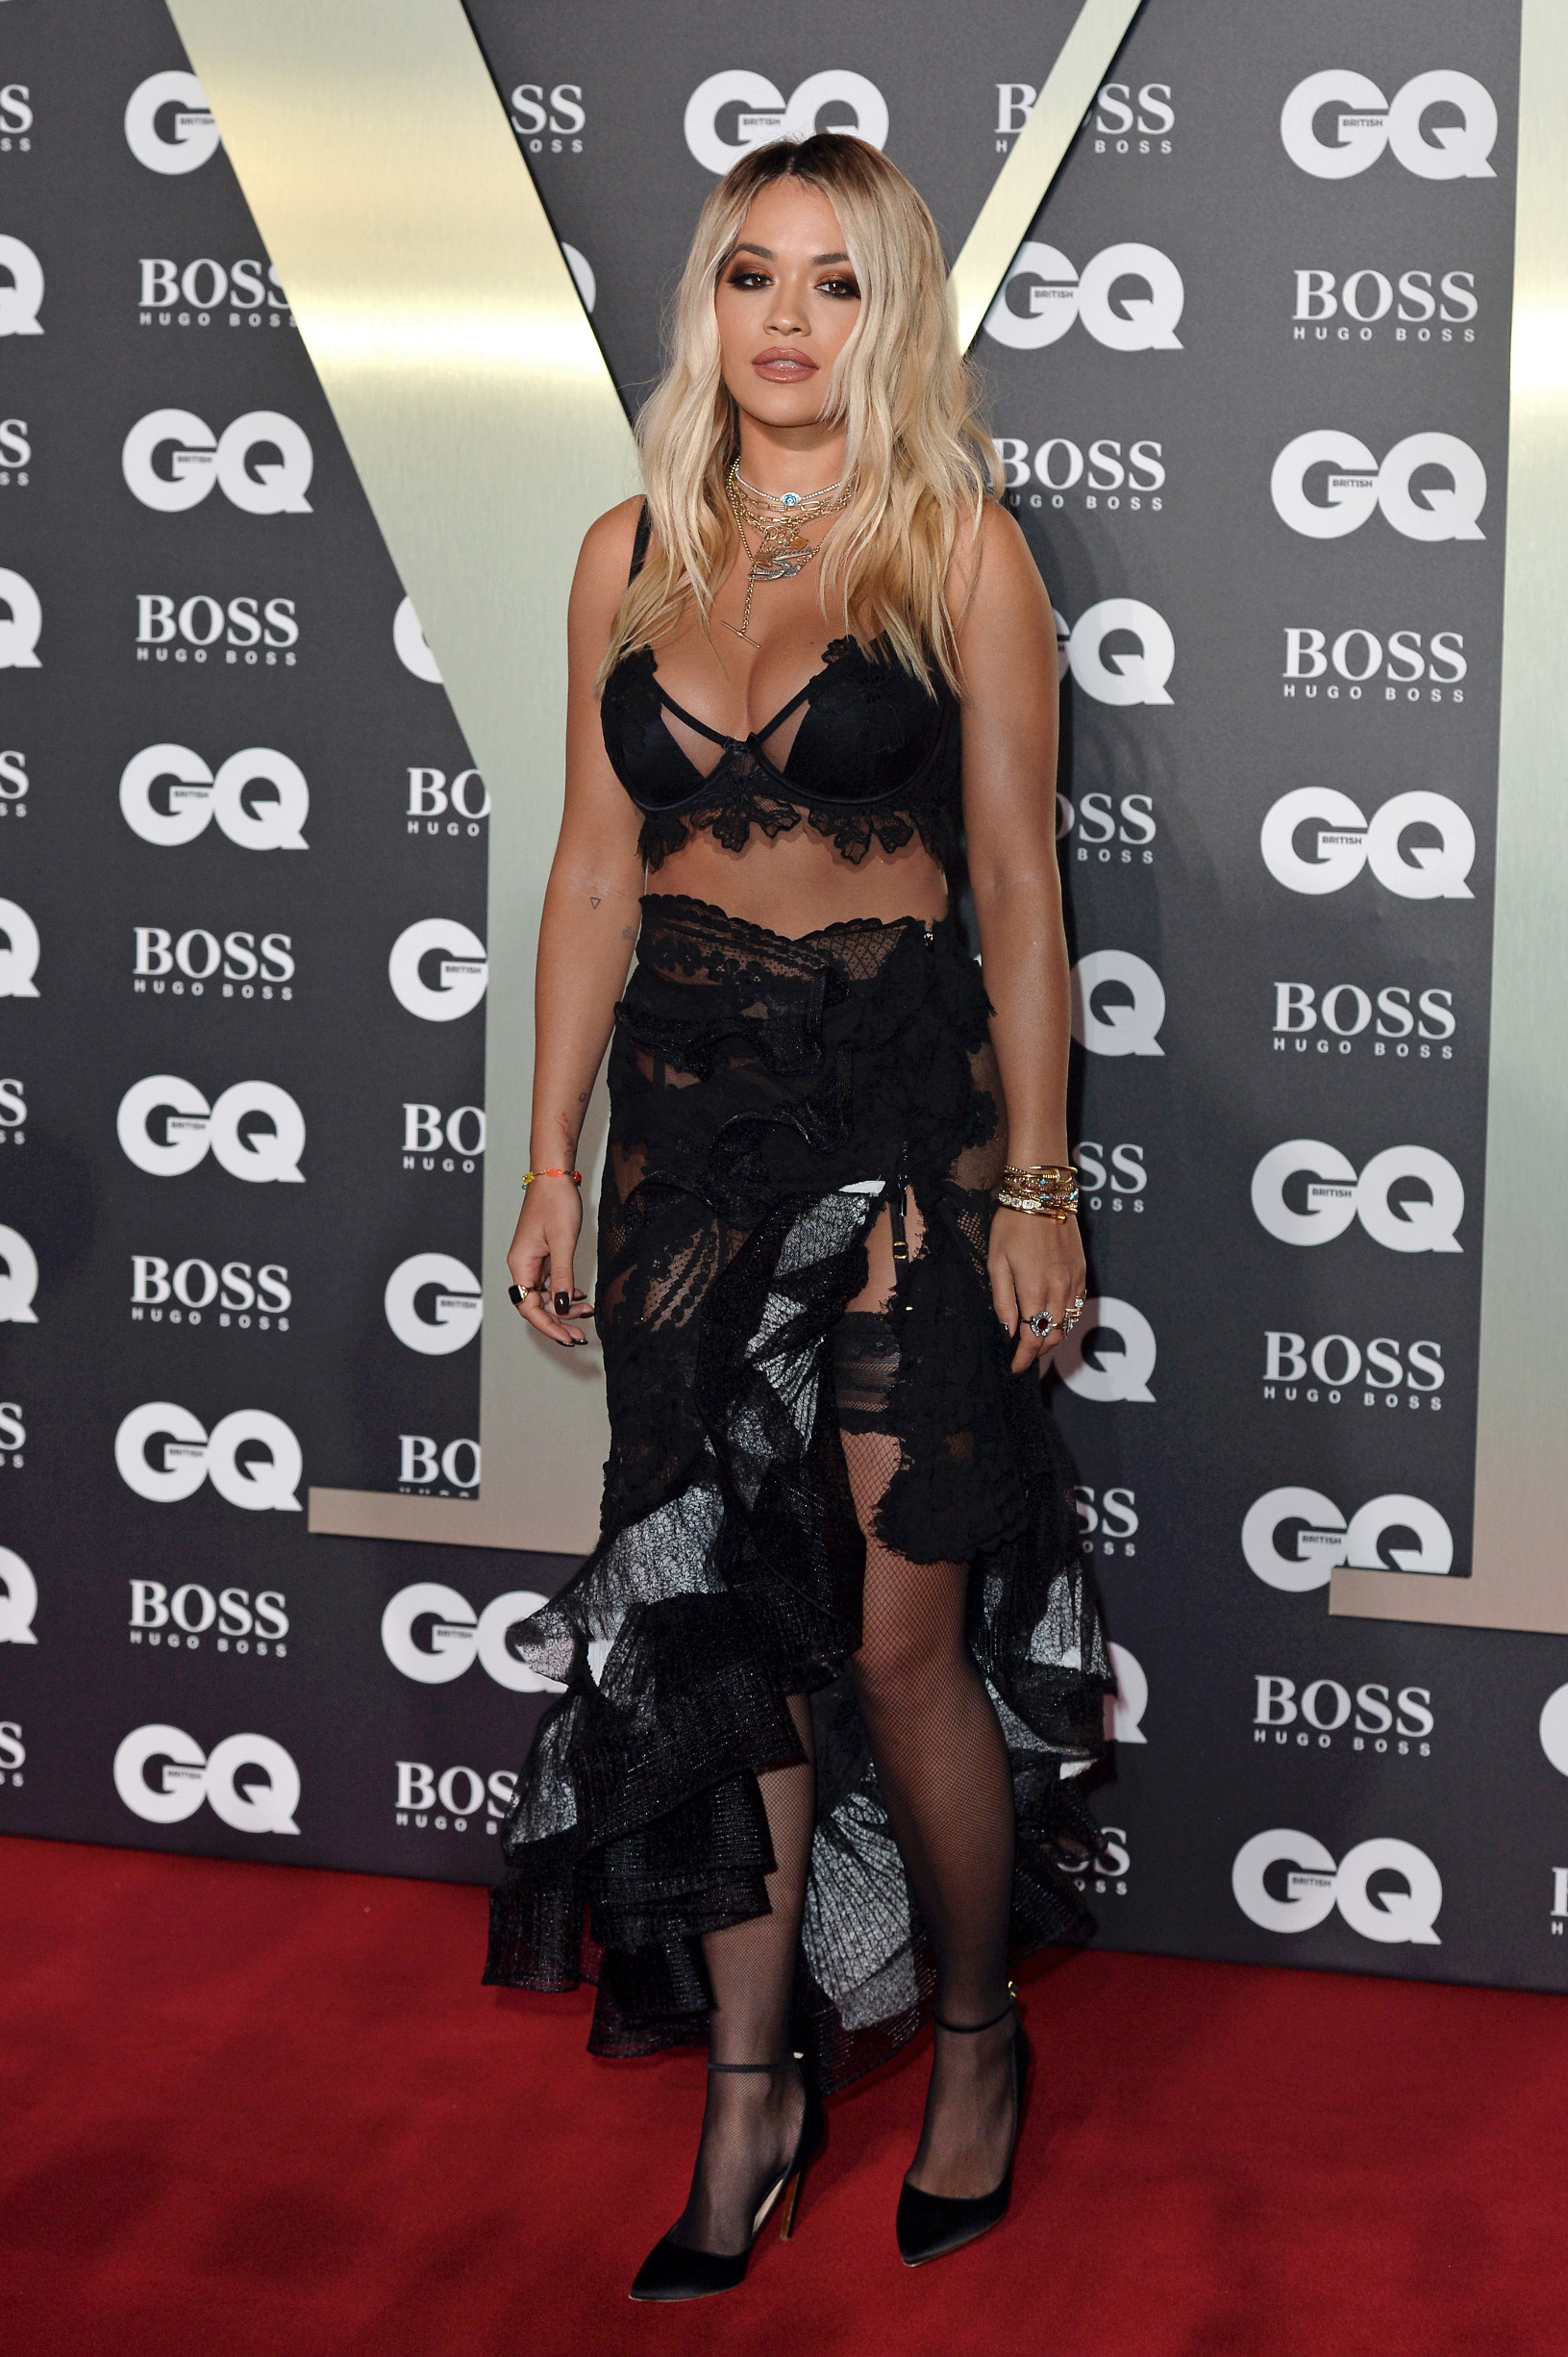 LONDON, ENGLAND - SEPTEMBER 03: Rita Ora attends the GQ Men Of The Year Awards 2019 at Tate Modern on September 03, 2019 in London, England. (Photo by Jeff Spicer/Getty Images)